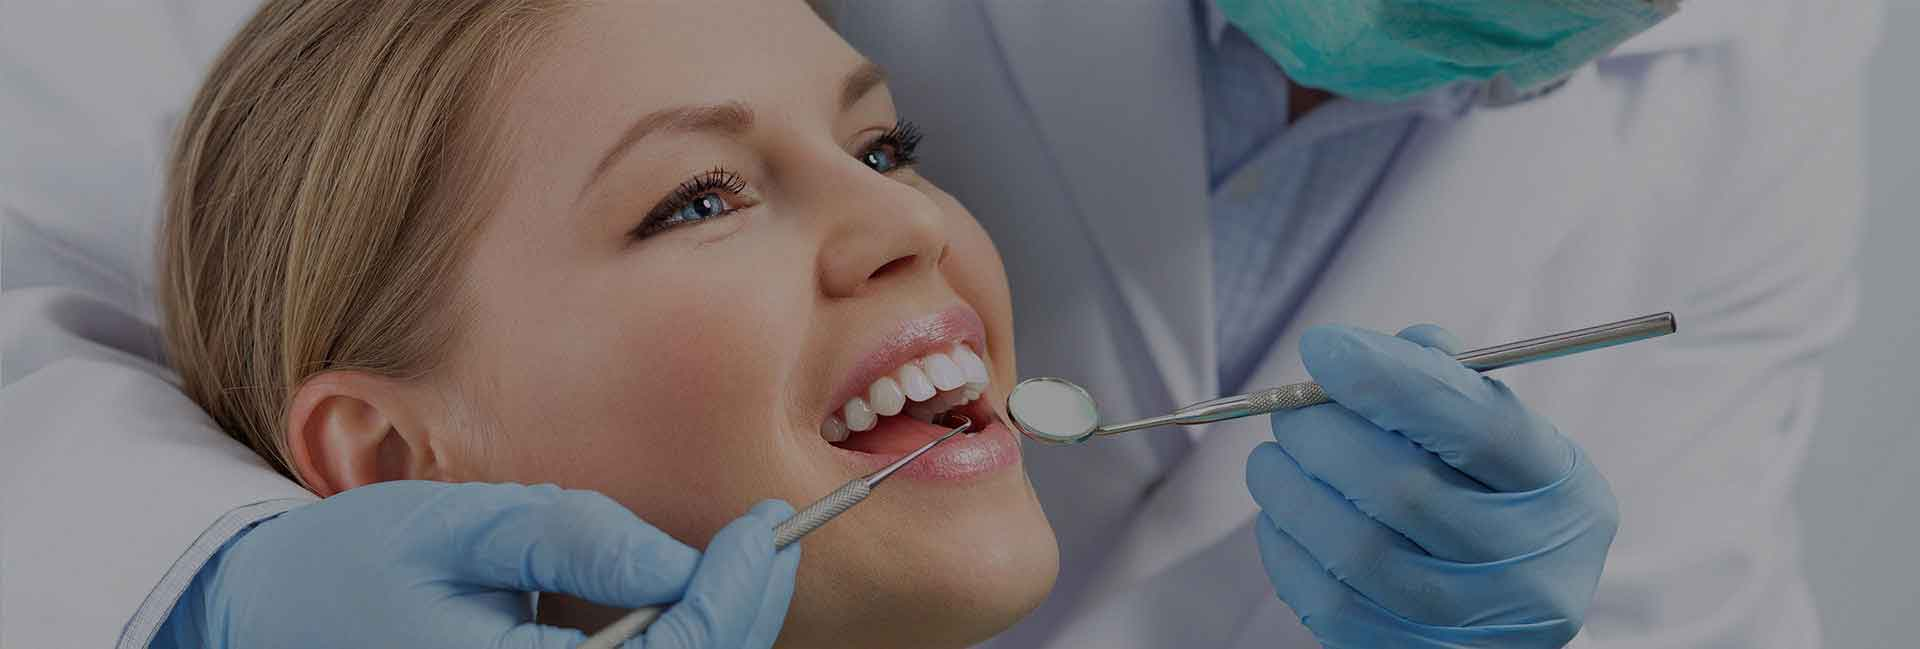 Dentiste Cergy 95800